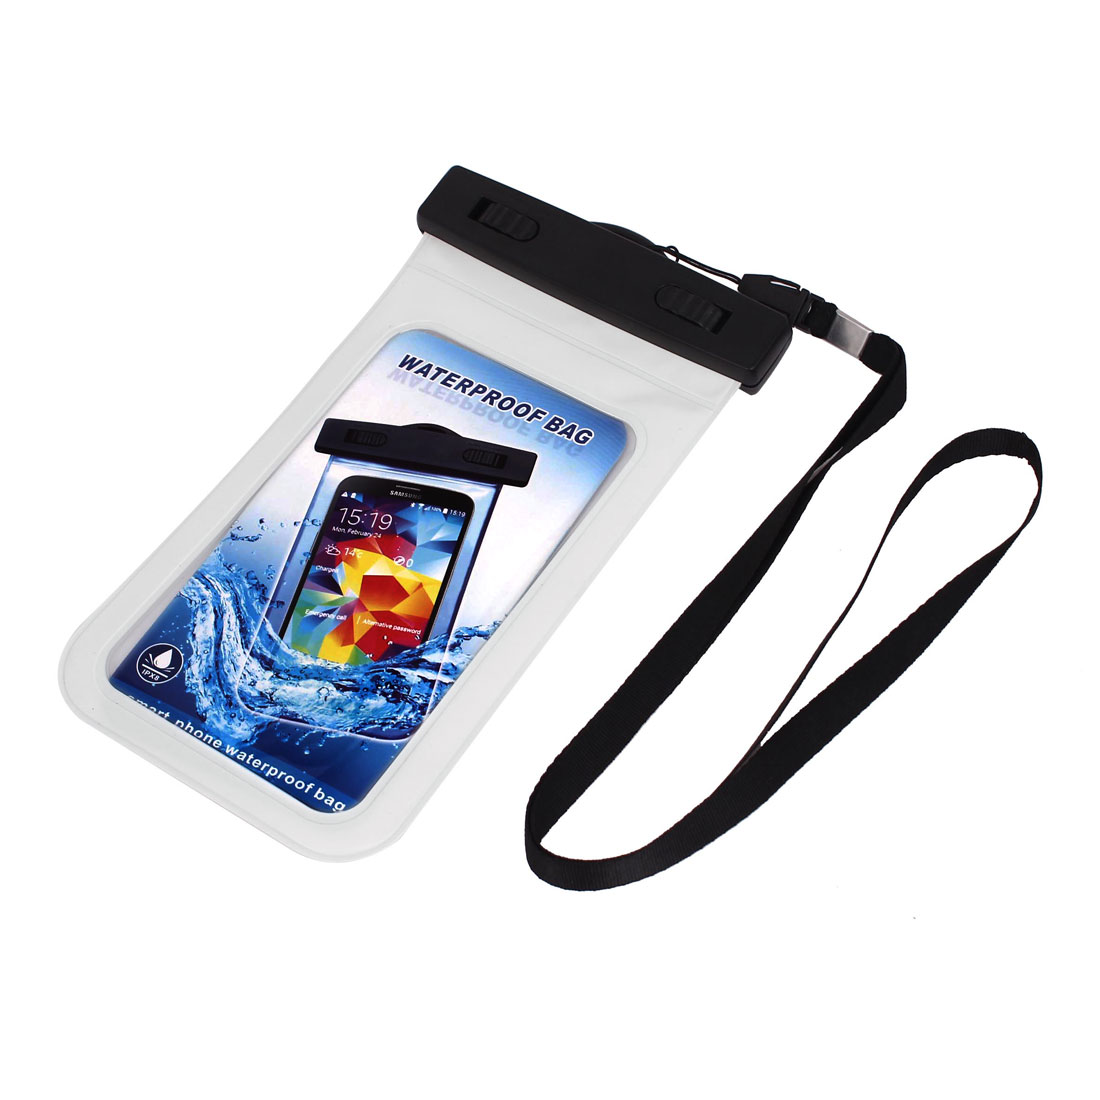 "Unique Bargains Waterproof Bag Holder Pouch White for 5.5"" Mobile Phone w Neck Strap"